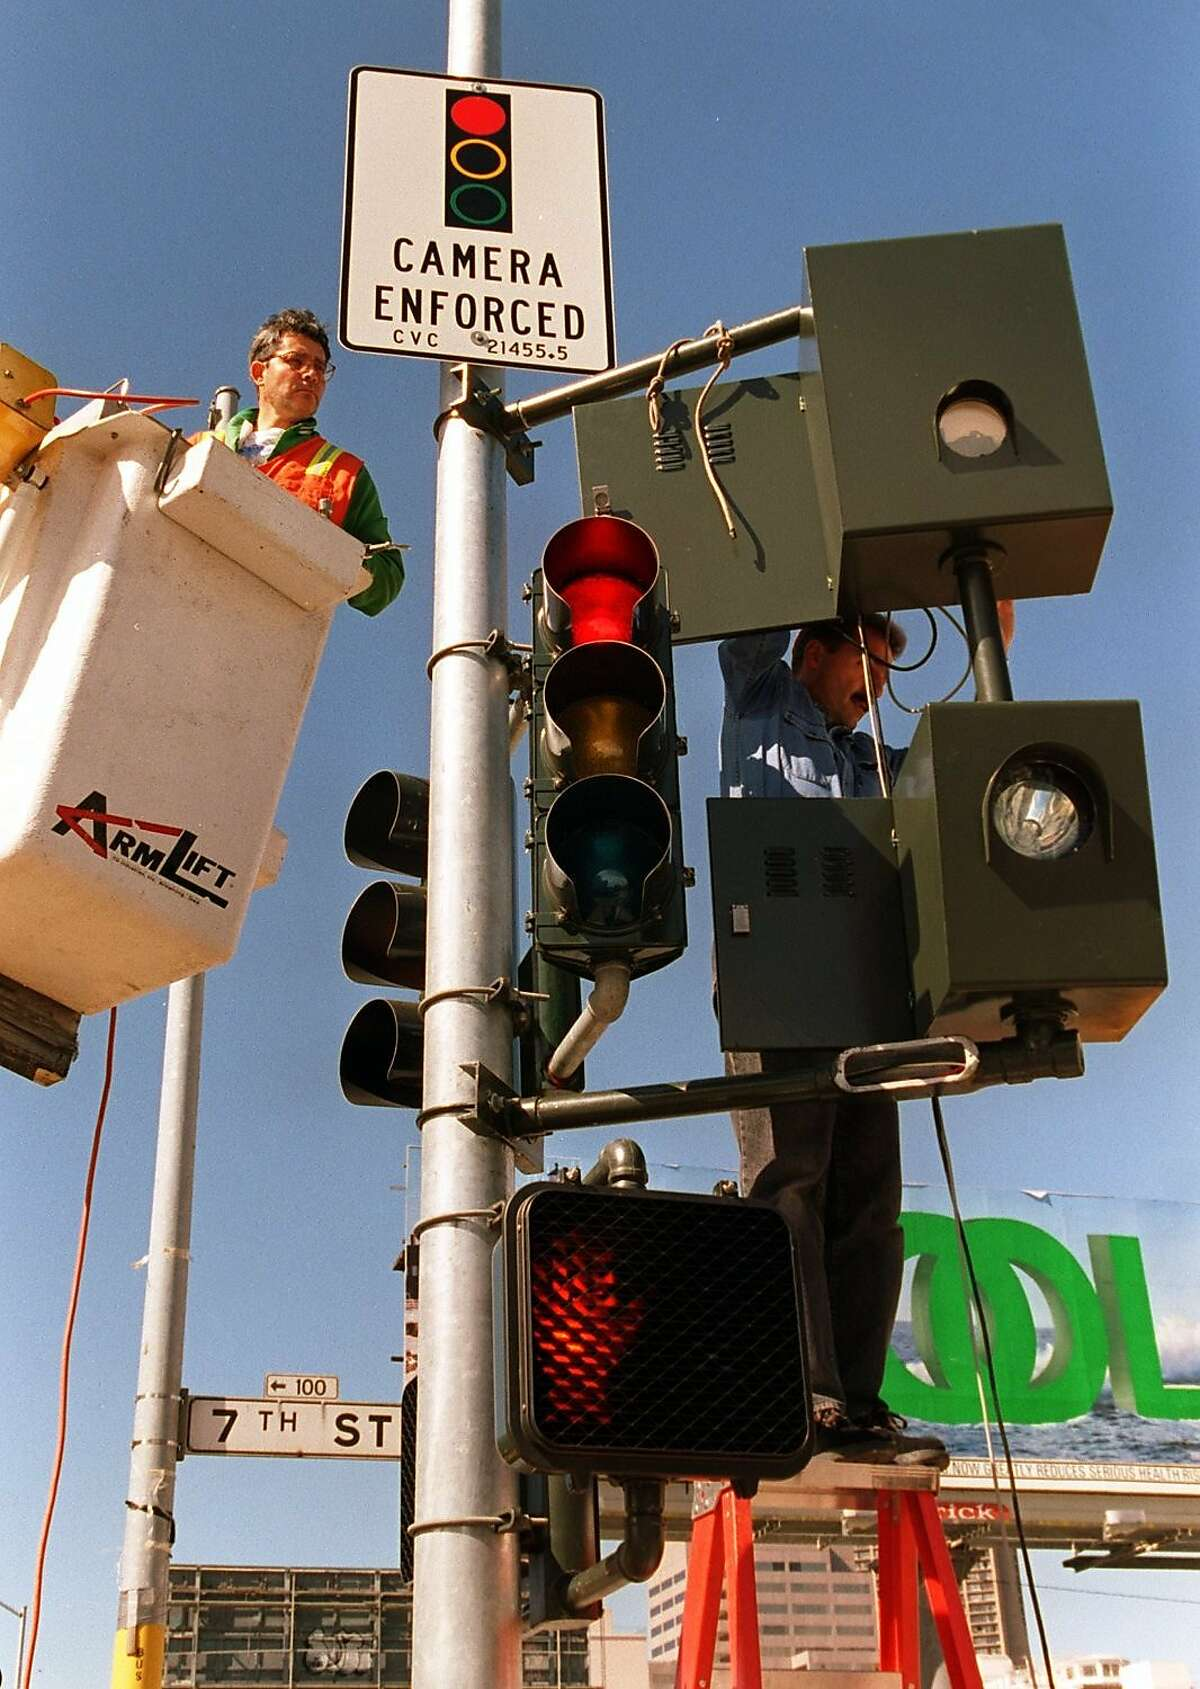 One of the first red-light ticketing cameras in San Francisco -- at Seventh and Mission streets;